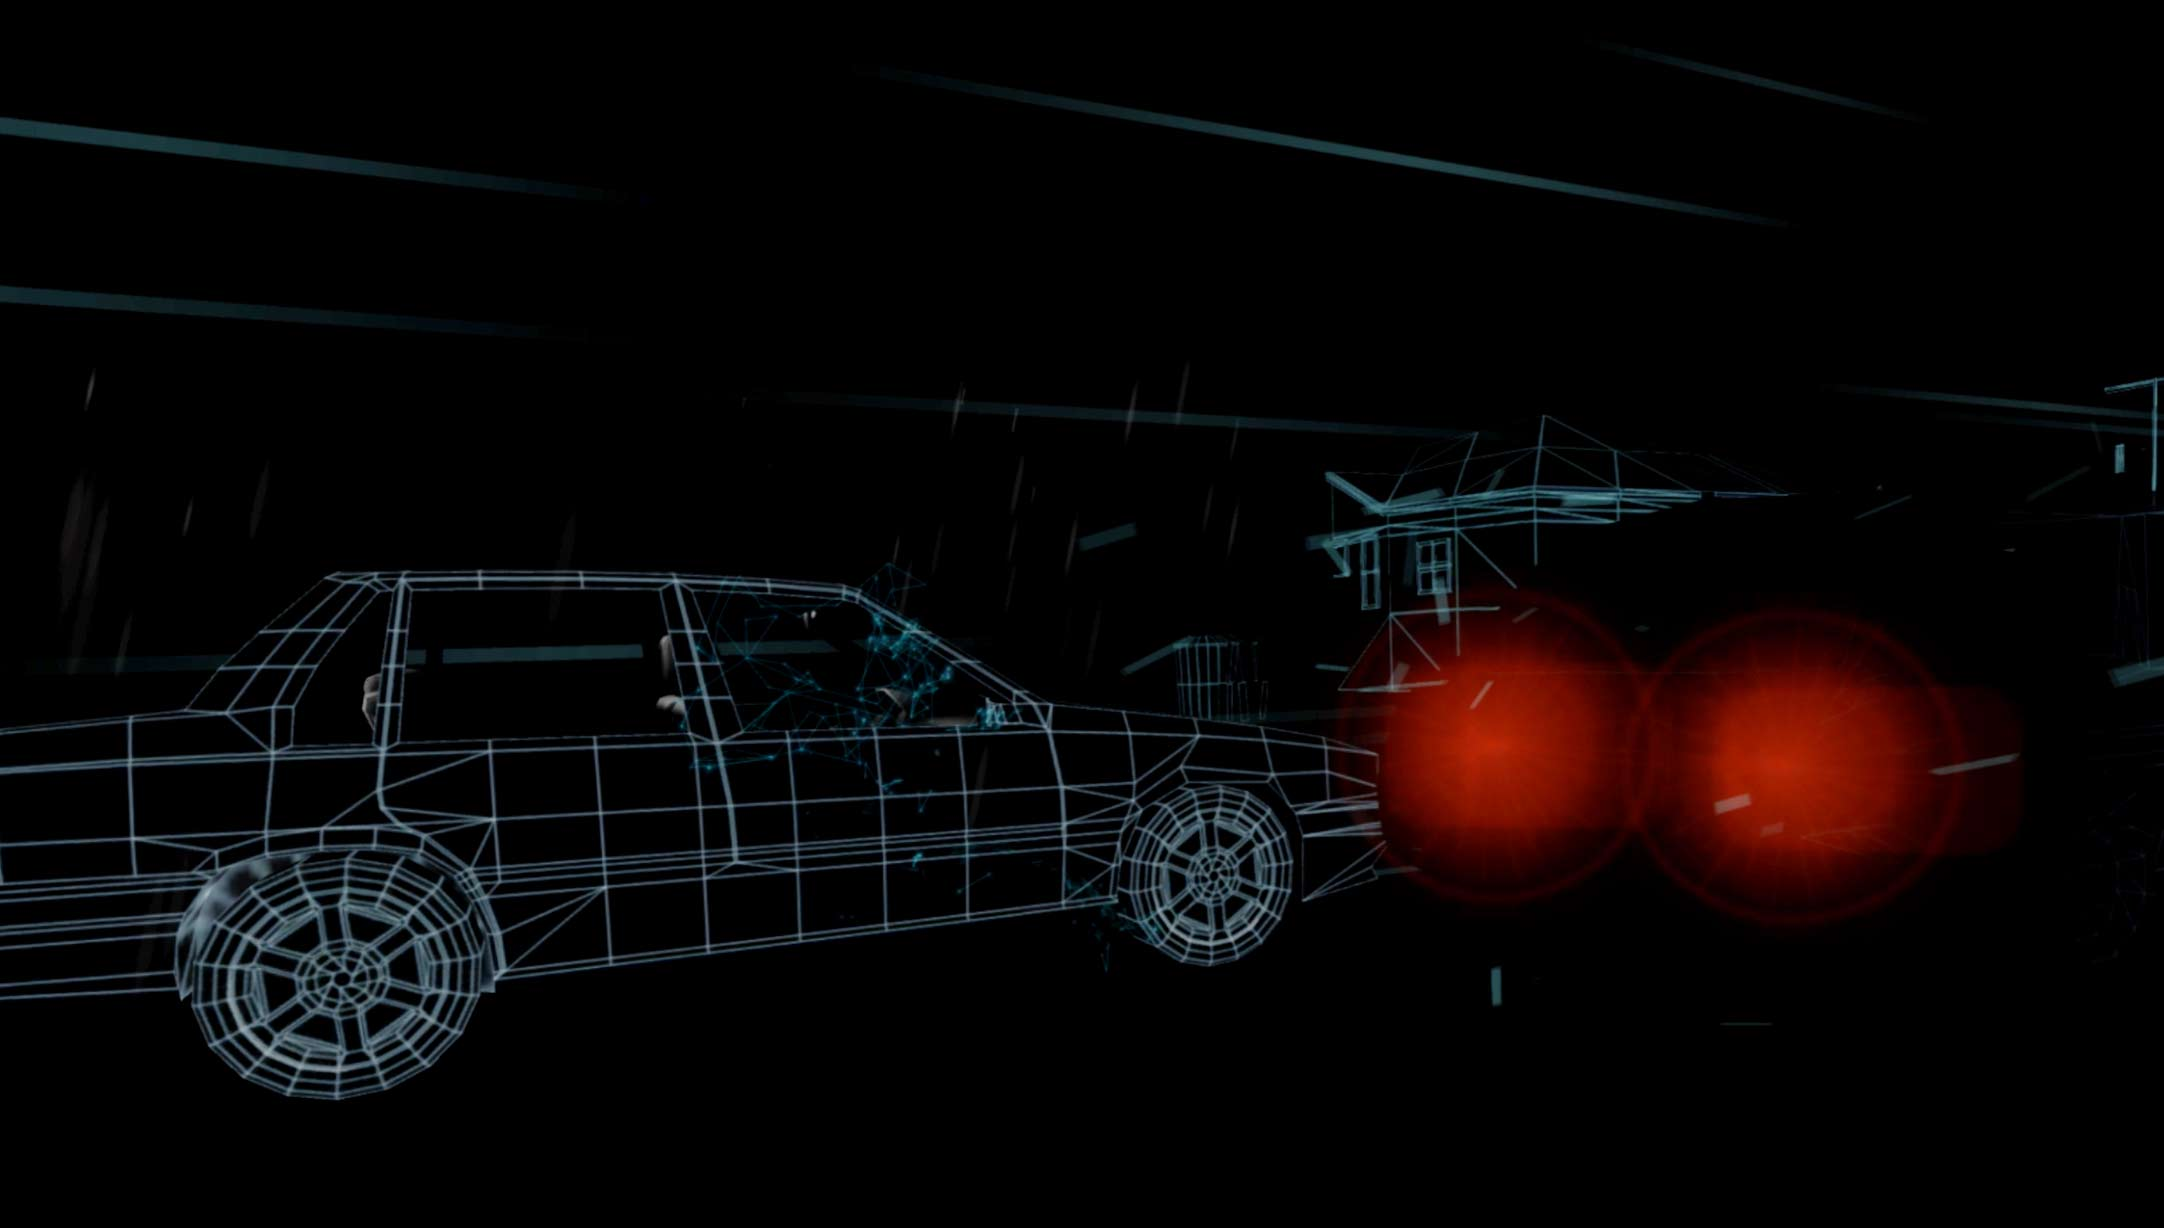 Dispatch-vr-experience-3d-animation-simulation_14.jpg